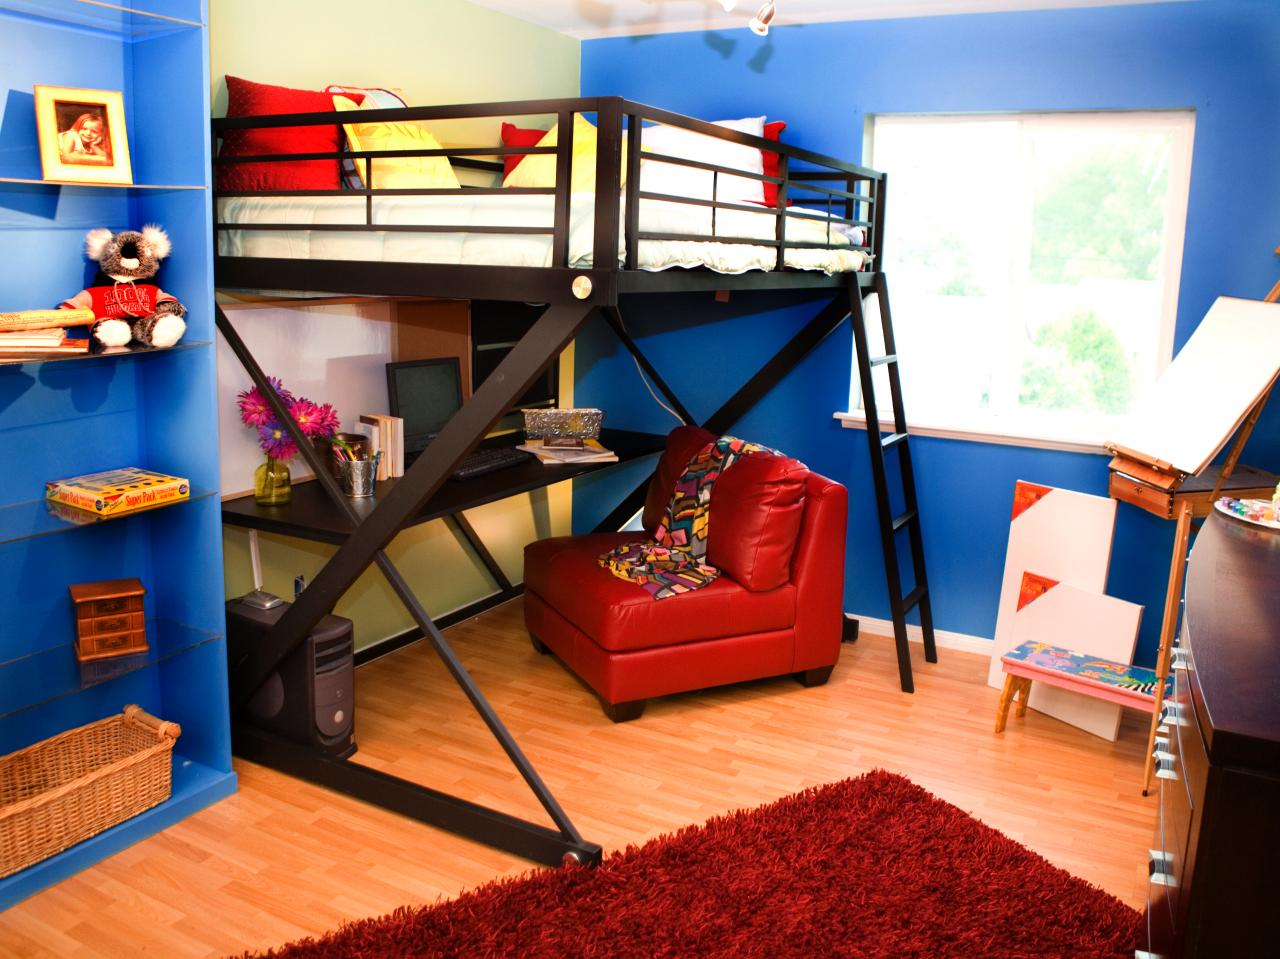 Stylish kids 39 bunk beds kids room ideas for playroom Bunk bed boys room